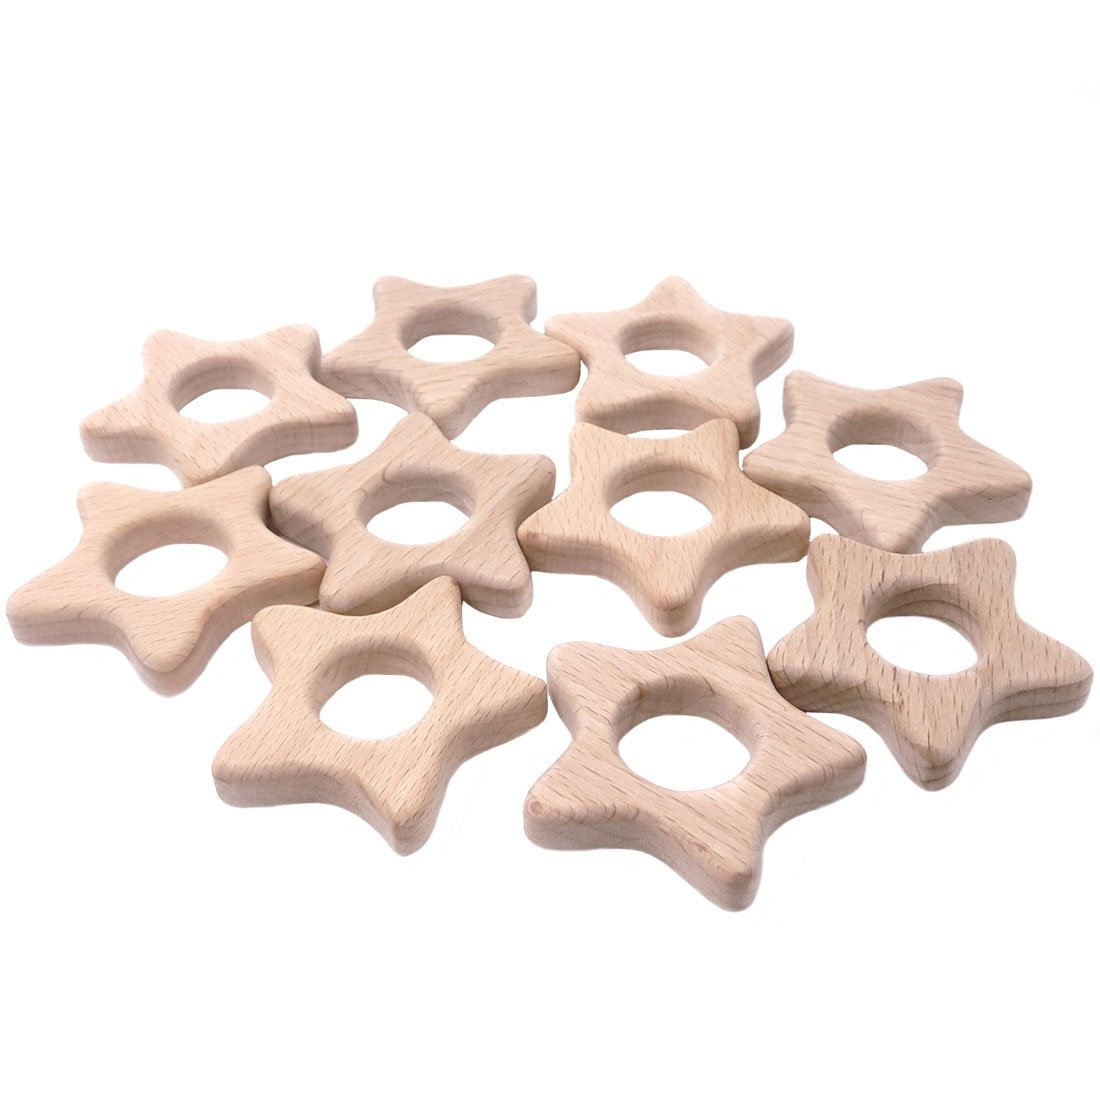 Amyster 5pcs Wooden Stars Teethers Rings Handmade Wooden Toys DIY Pendent Set